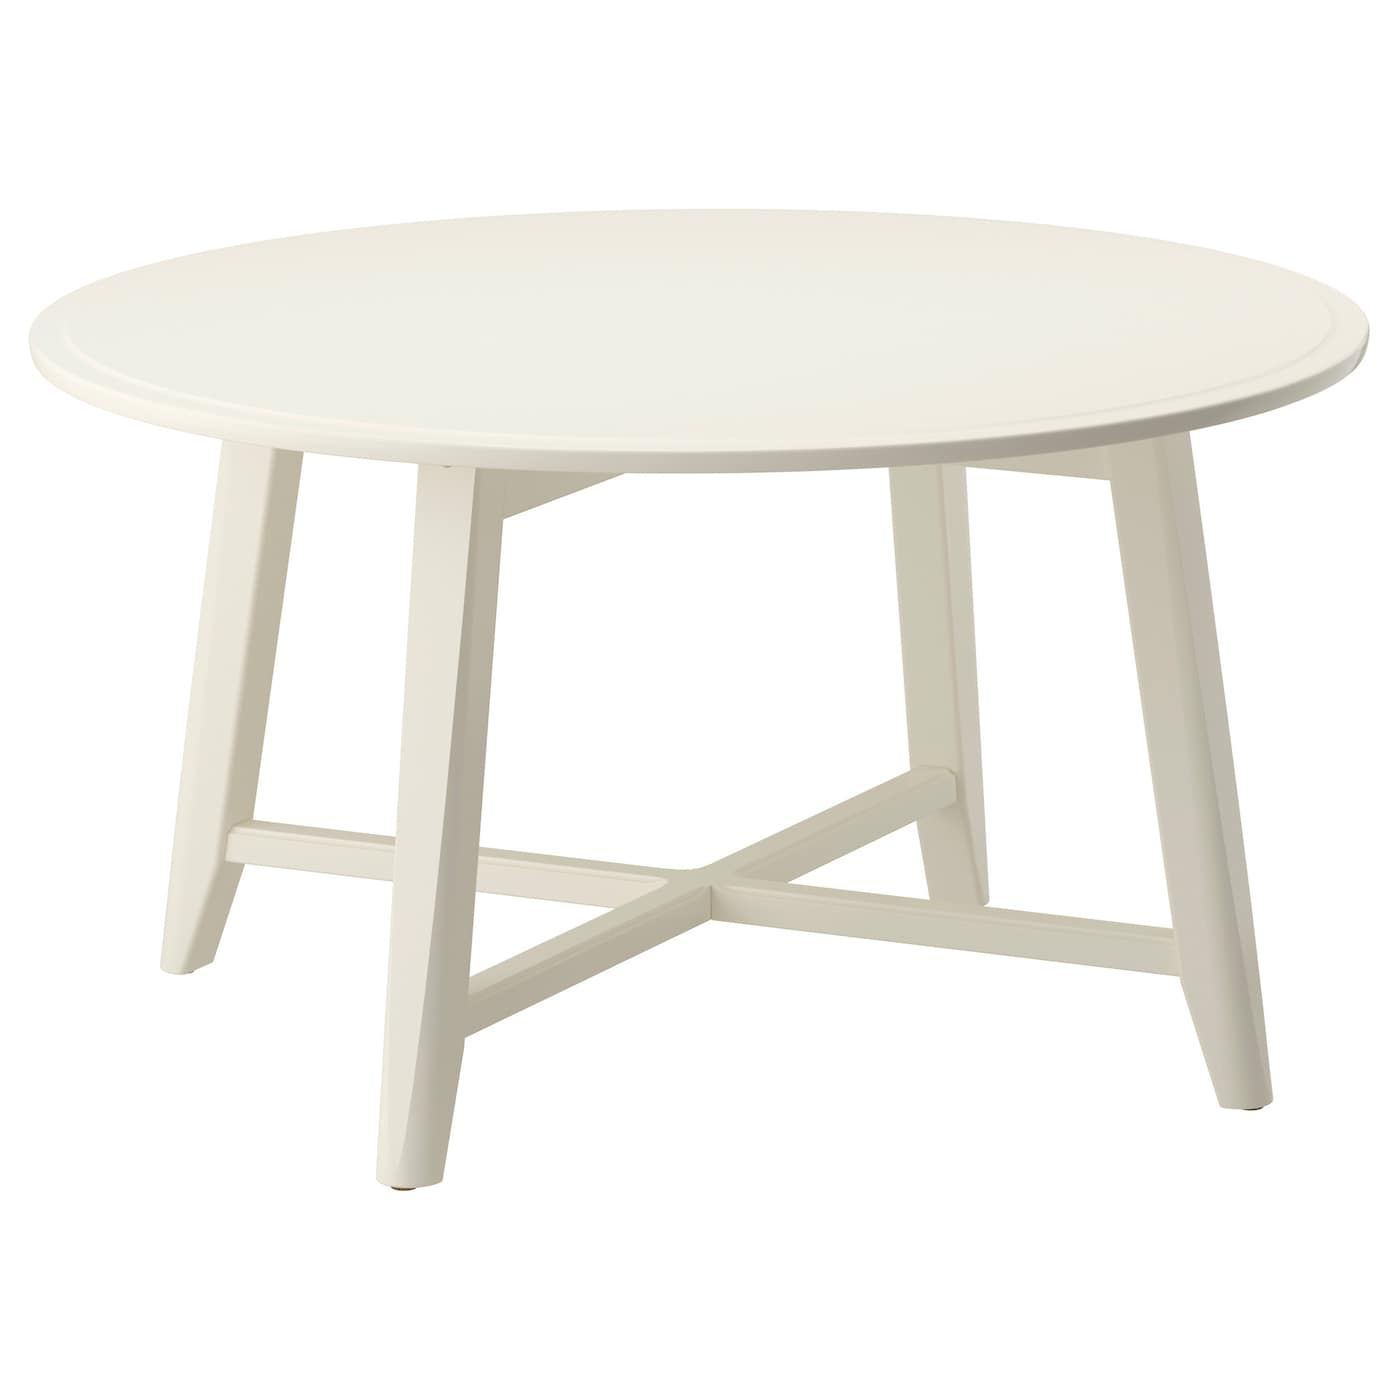 7cc147b56616b9 Tables de salon design (originales, en verre, en bois...) - IKEA